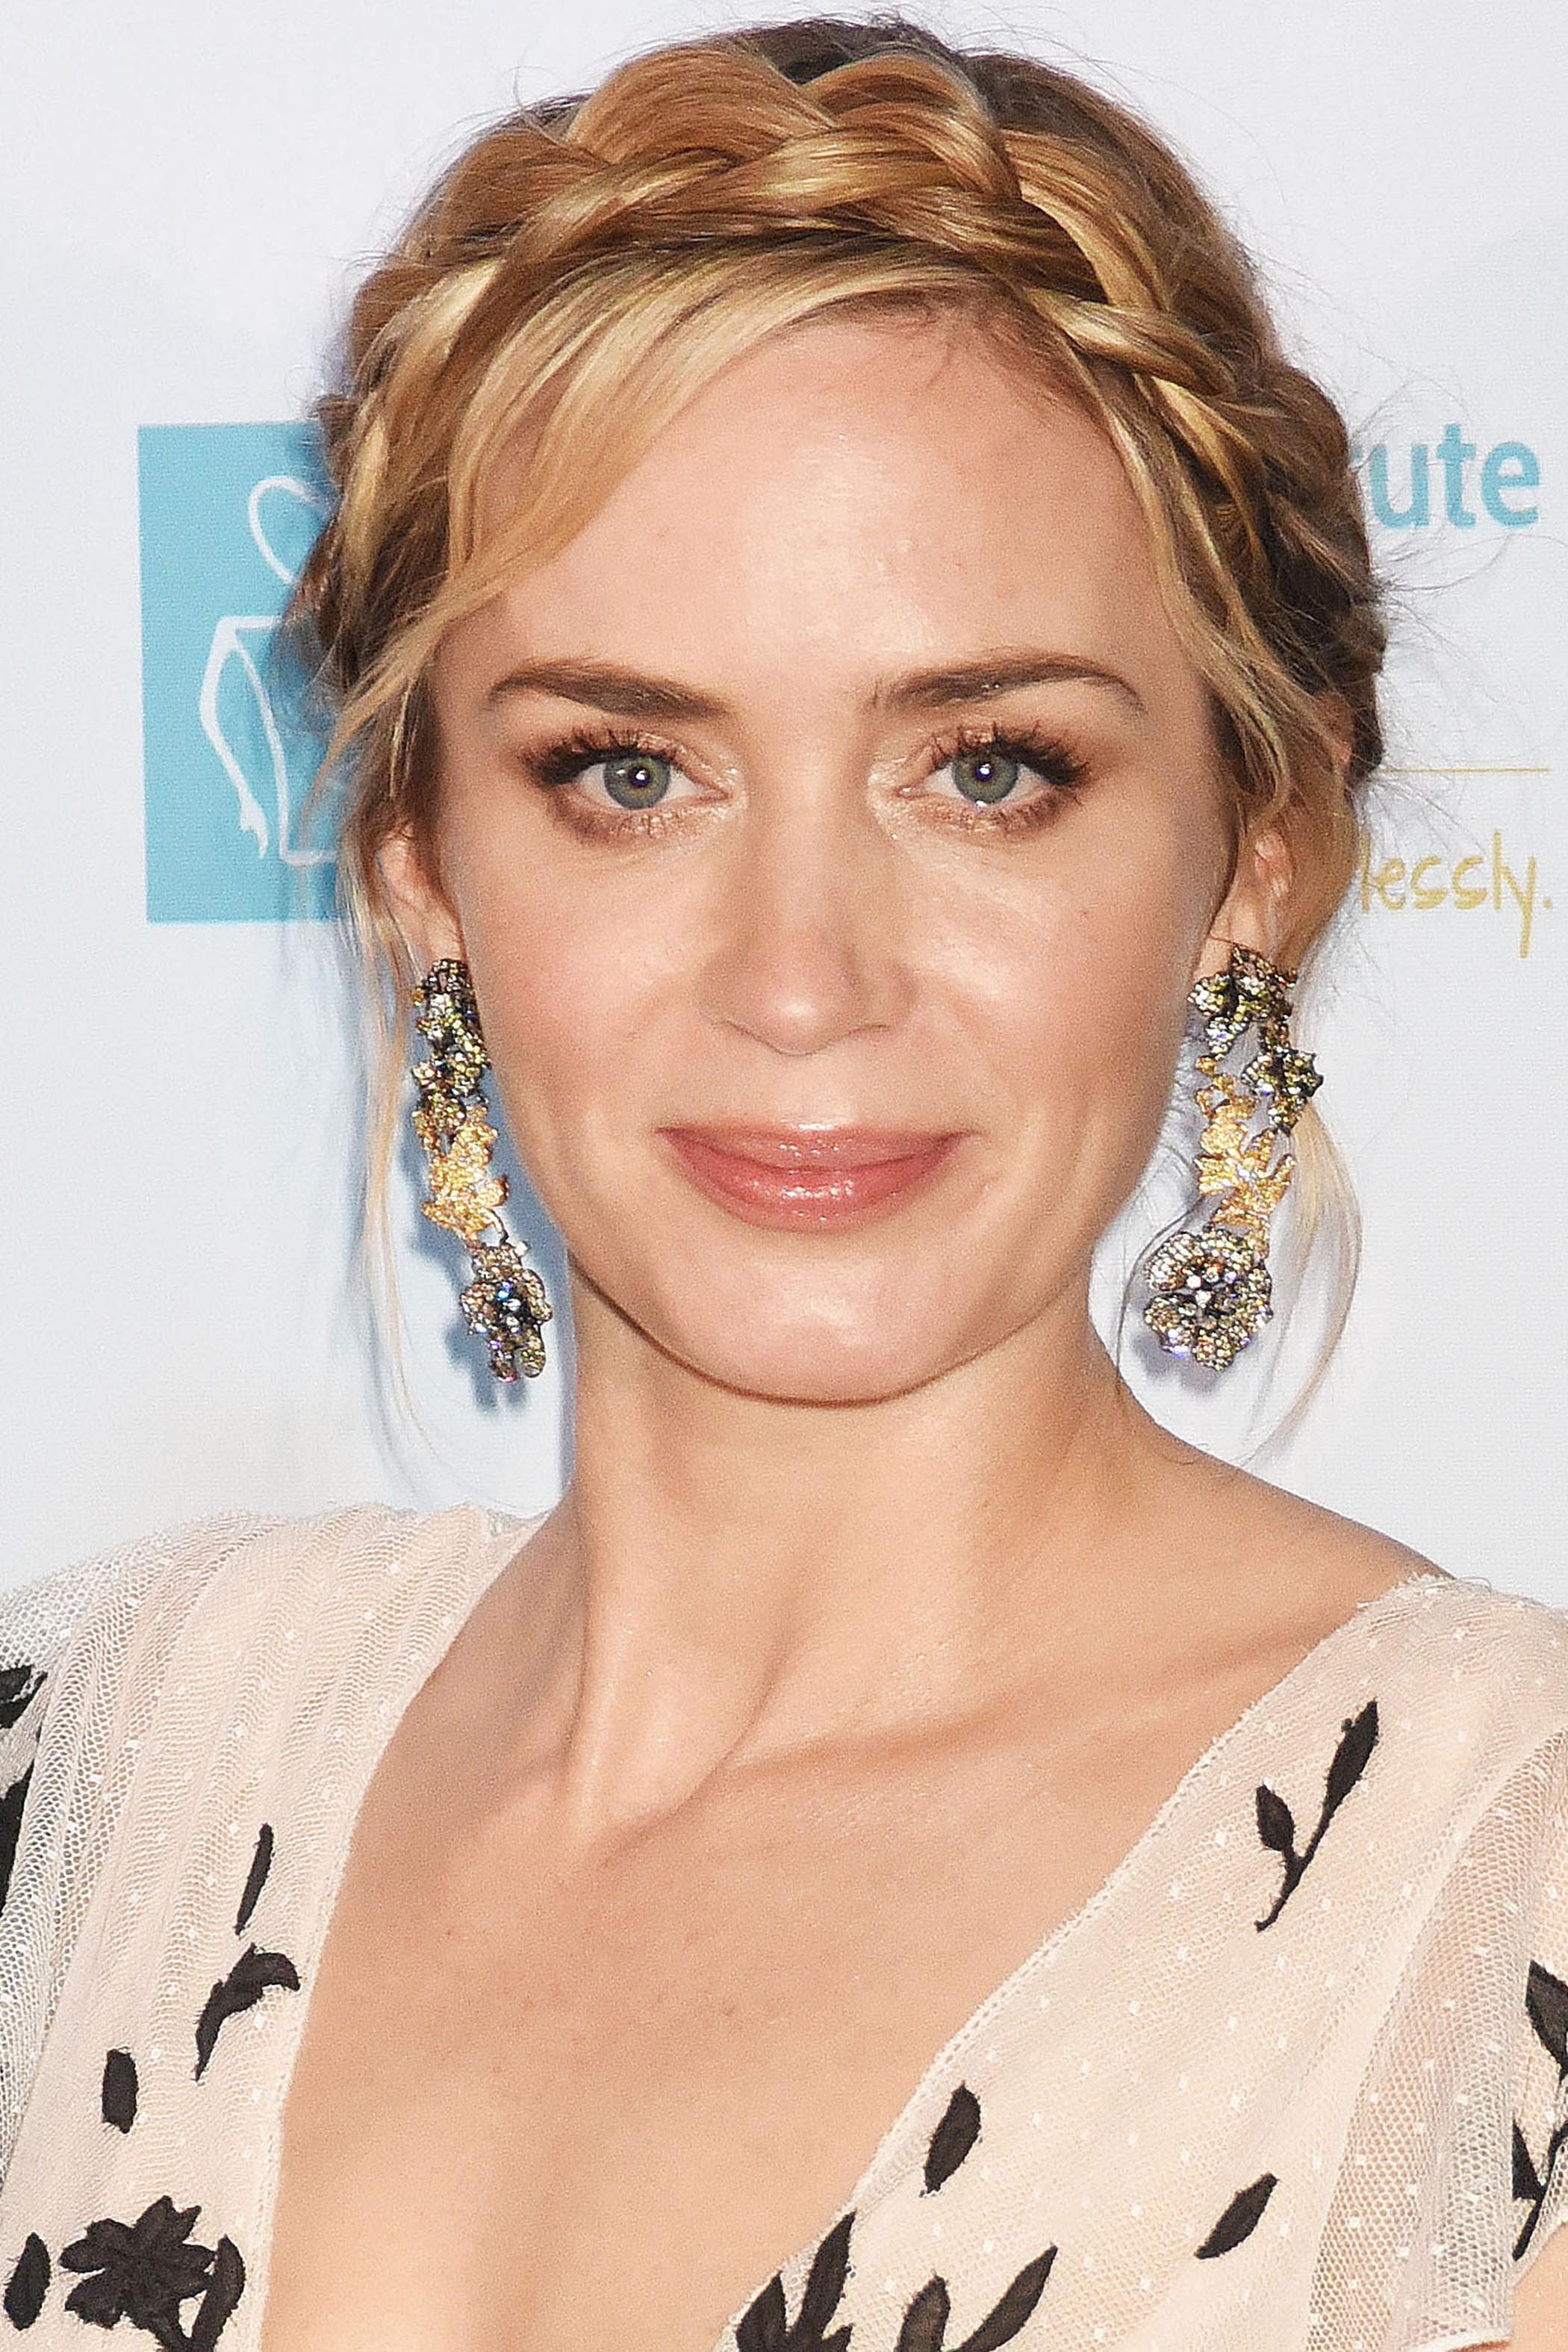 Emily Blunt with her golden blonde hair styled into a halo braid with wispy tendrils at the front, wearing pink dress and posing on the red carpet